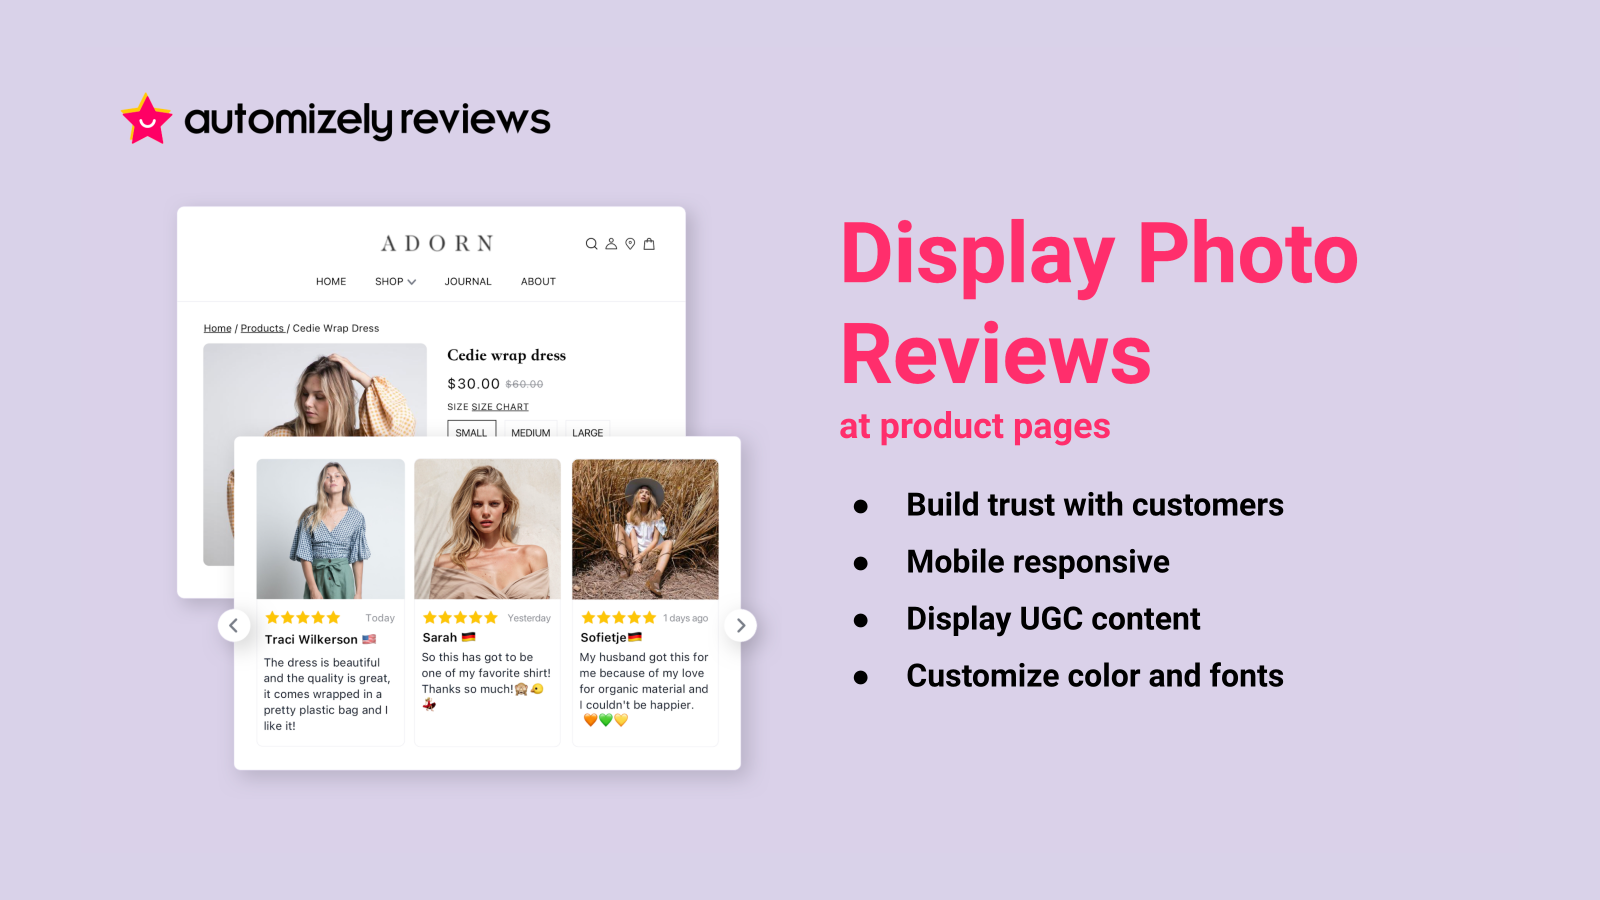 Display photo reviews at product pages